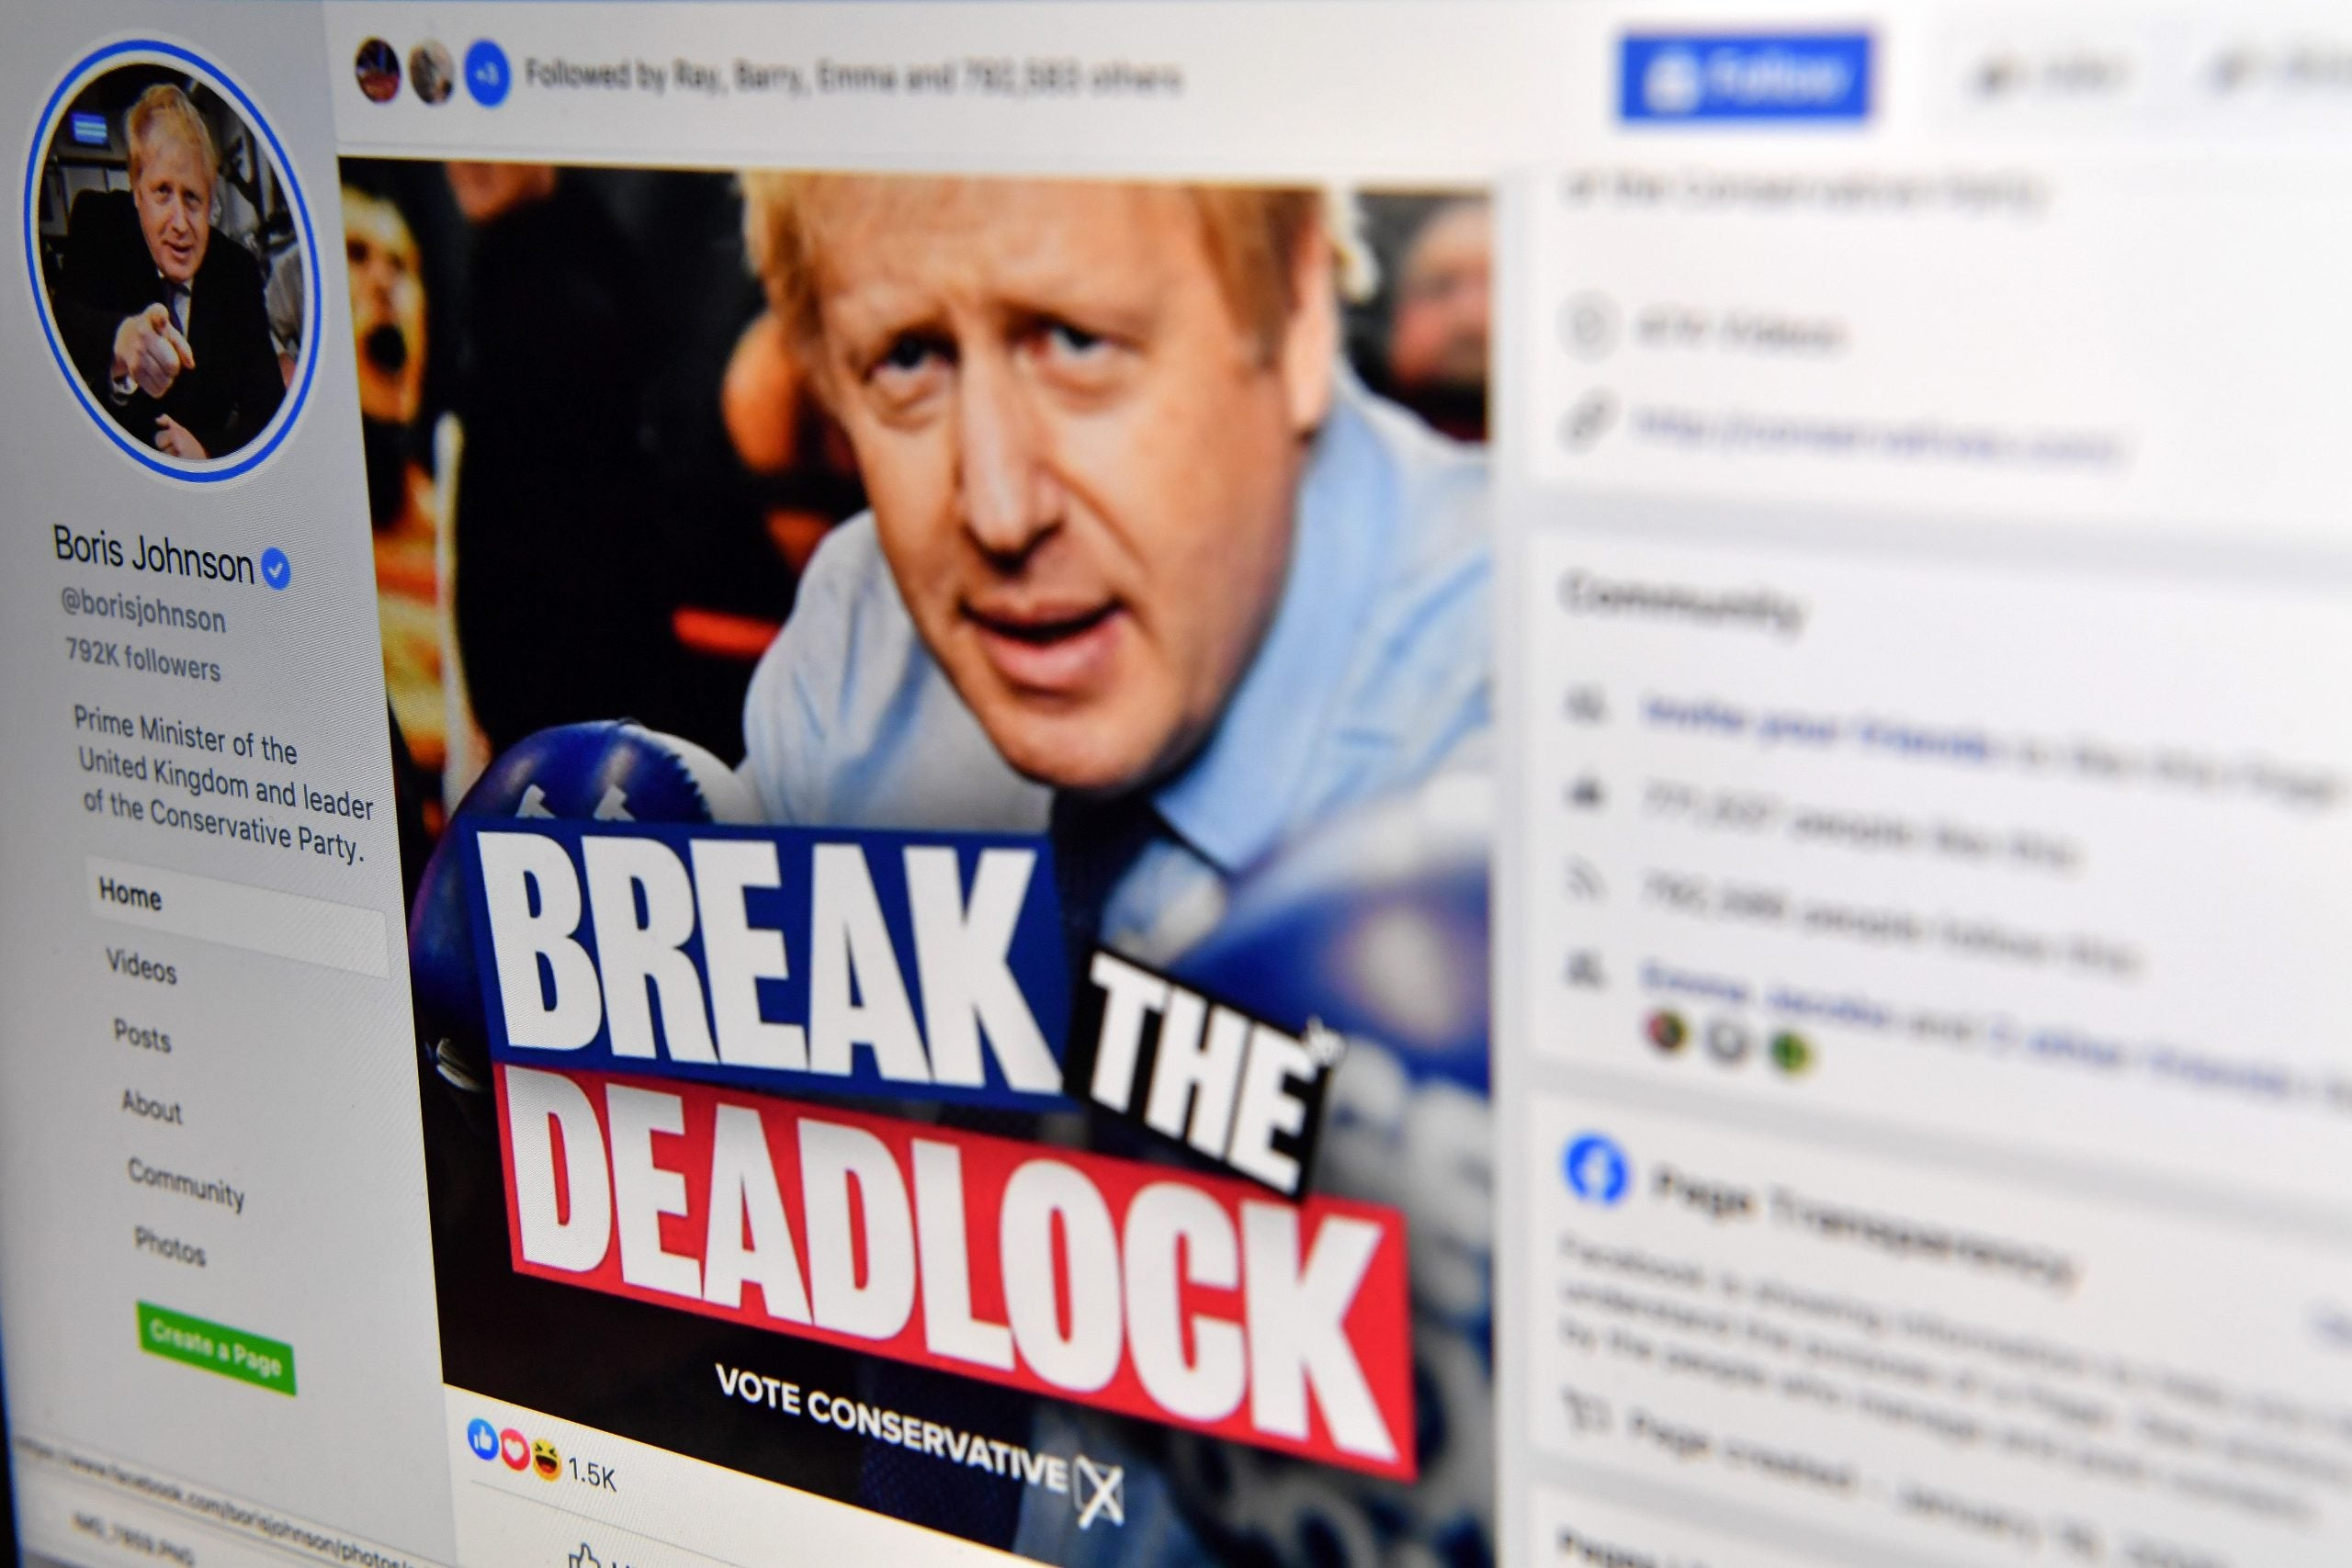 All the parties are being dishonest online – but the Conservatives are better at it